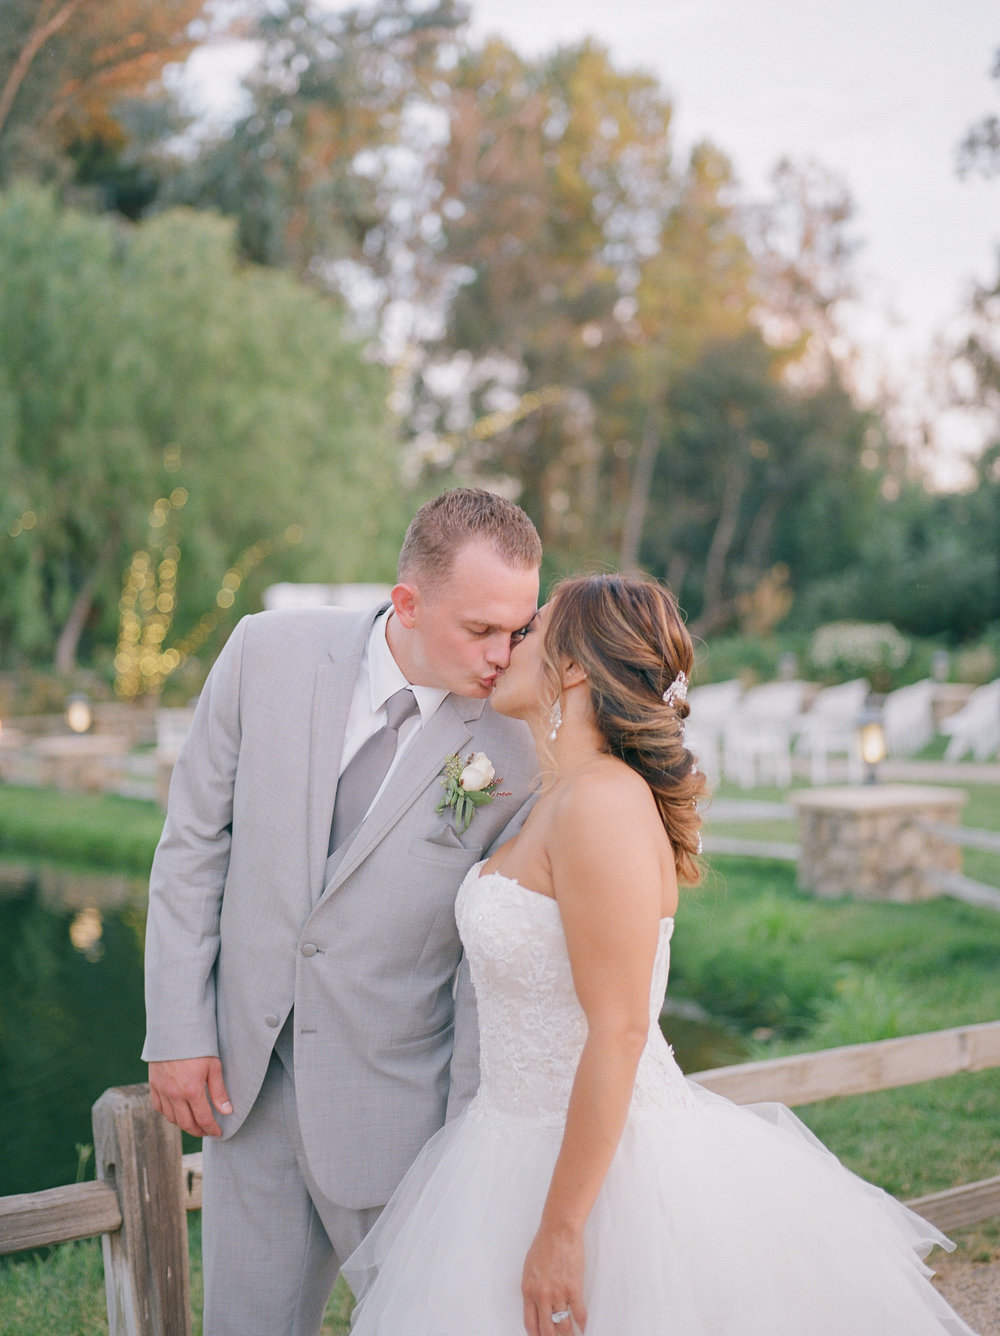 Wedding Hairstyle Down Medium Length with Bride Kissing Husband Outdoors in Photos. Wedding Hair and Makeup by Vanity Belle